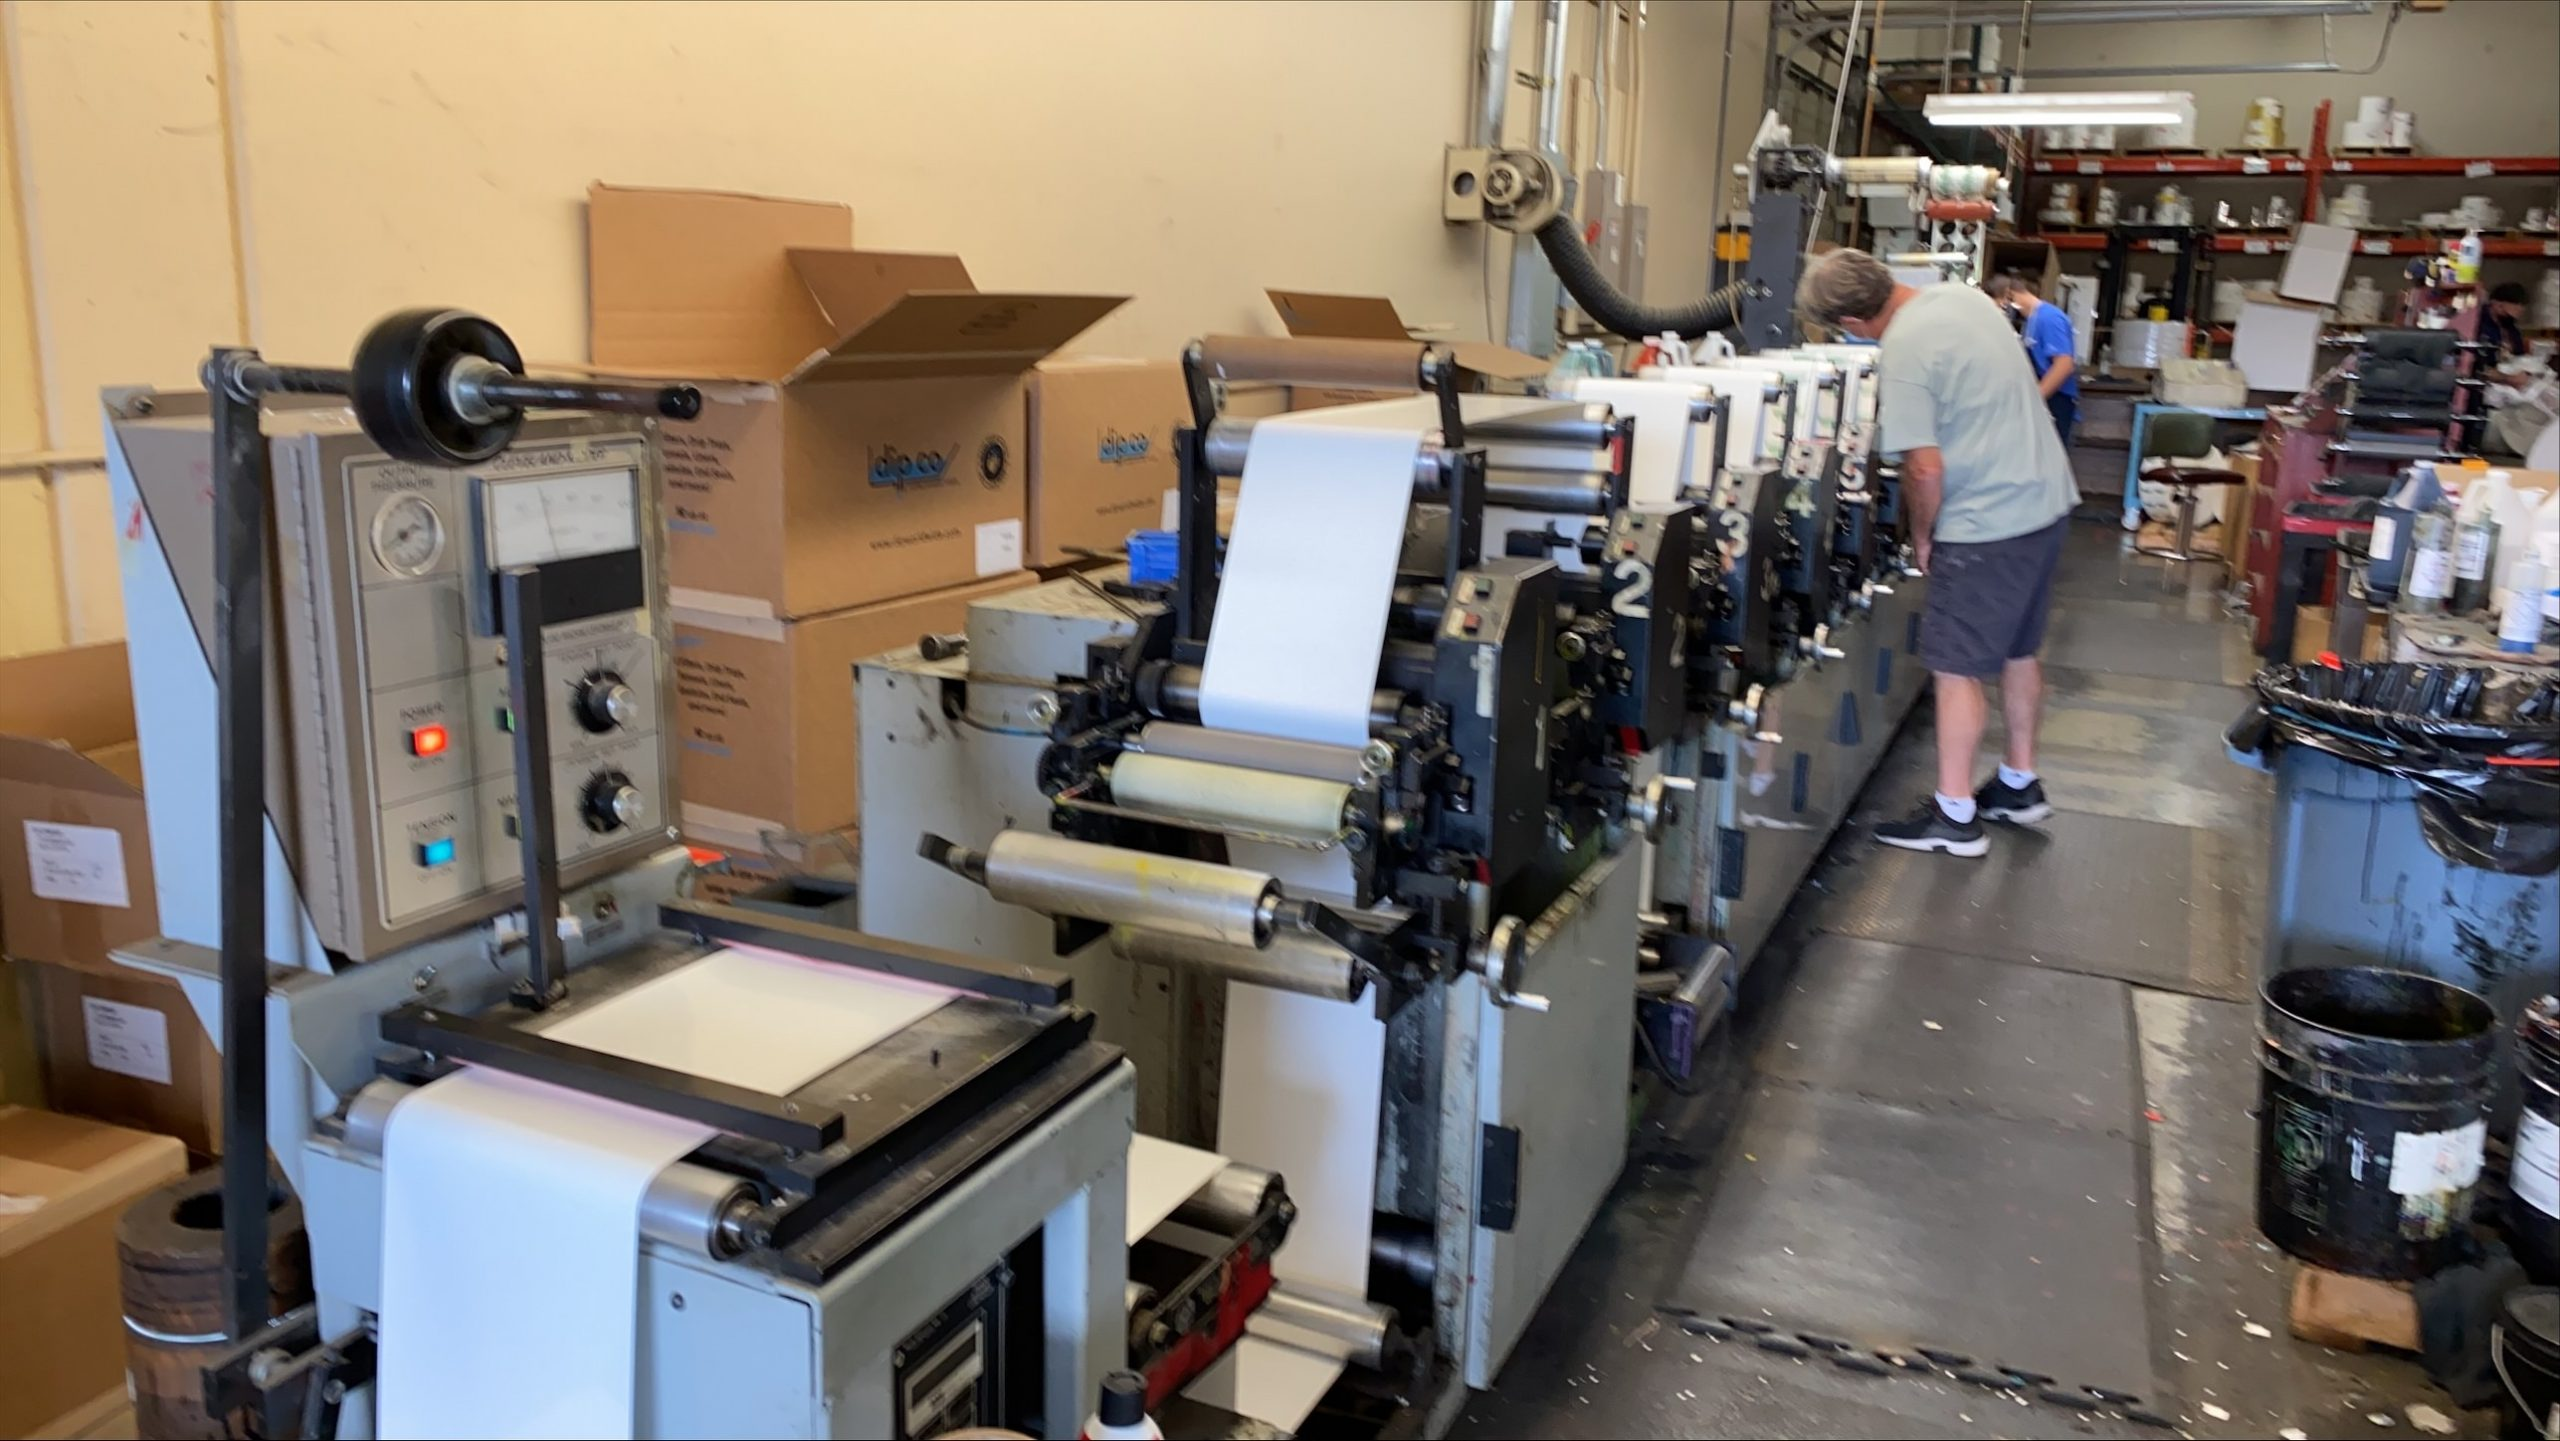 Propheteer 1000 - Used Flexo Printing Presses and Used Flexographic Equipment-8